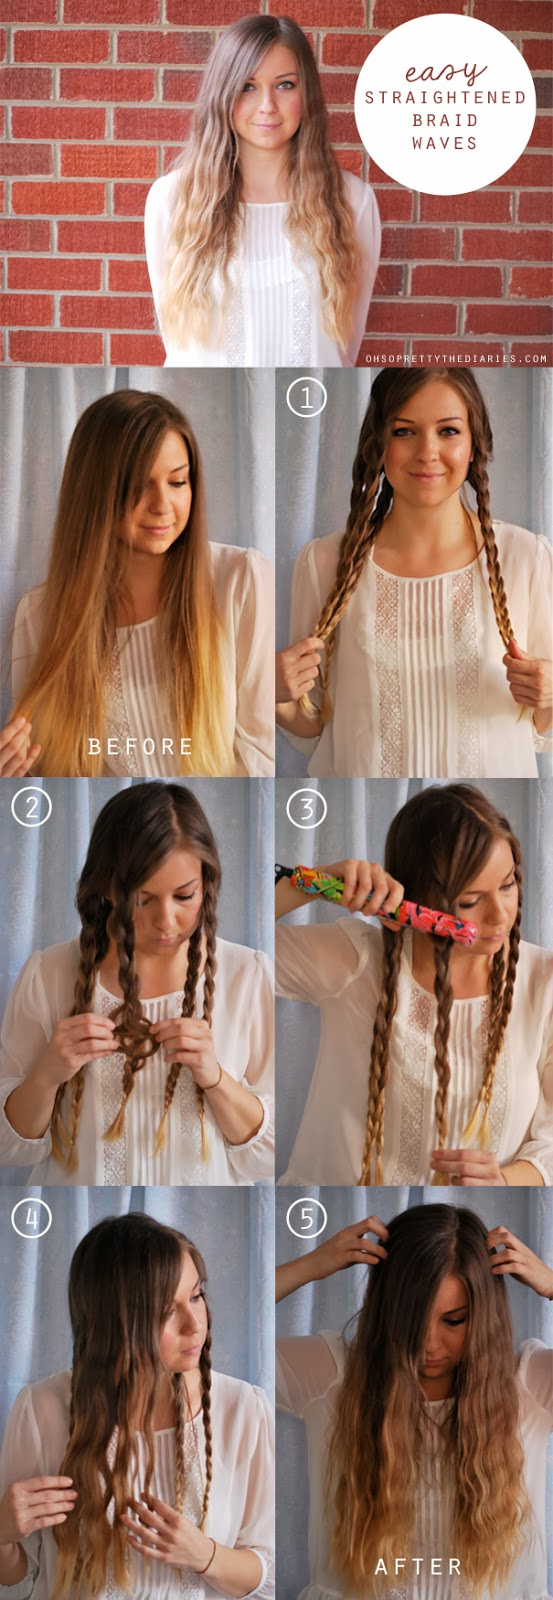 how to clean your braids